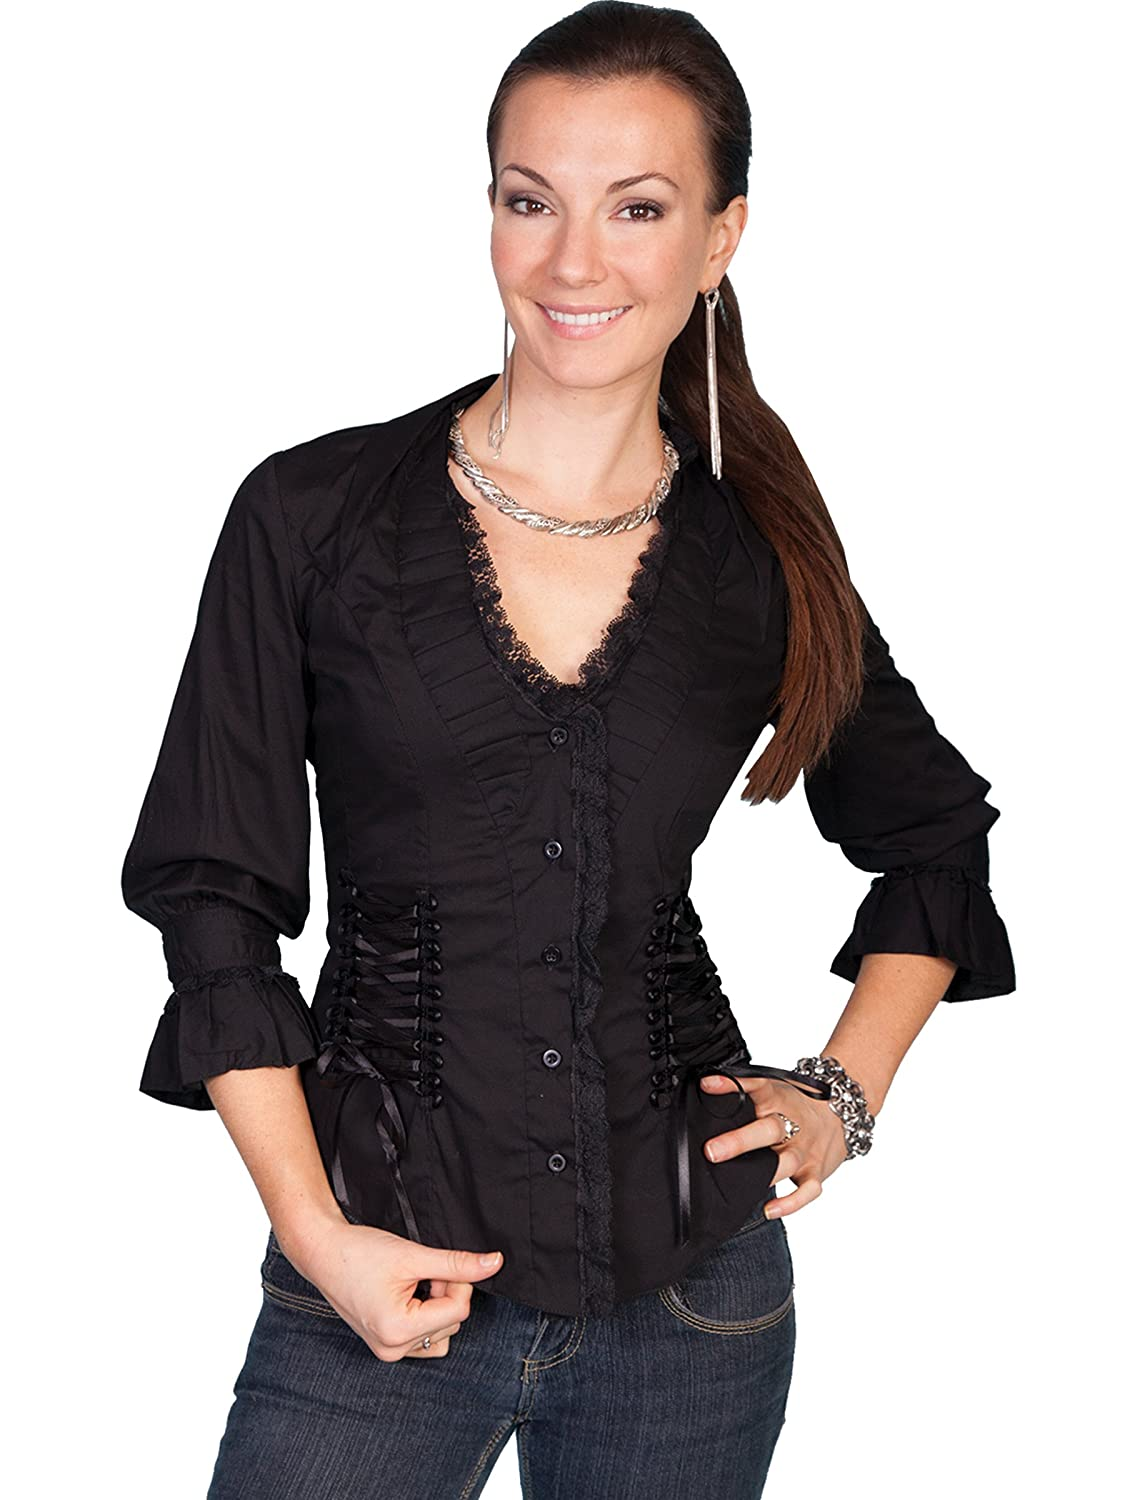 Victorian Blouses, Tops, Shirts, Sweaters Scully Womens Lace Up Back 3/4 Length Top $76.75 AT vintagedancer.com